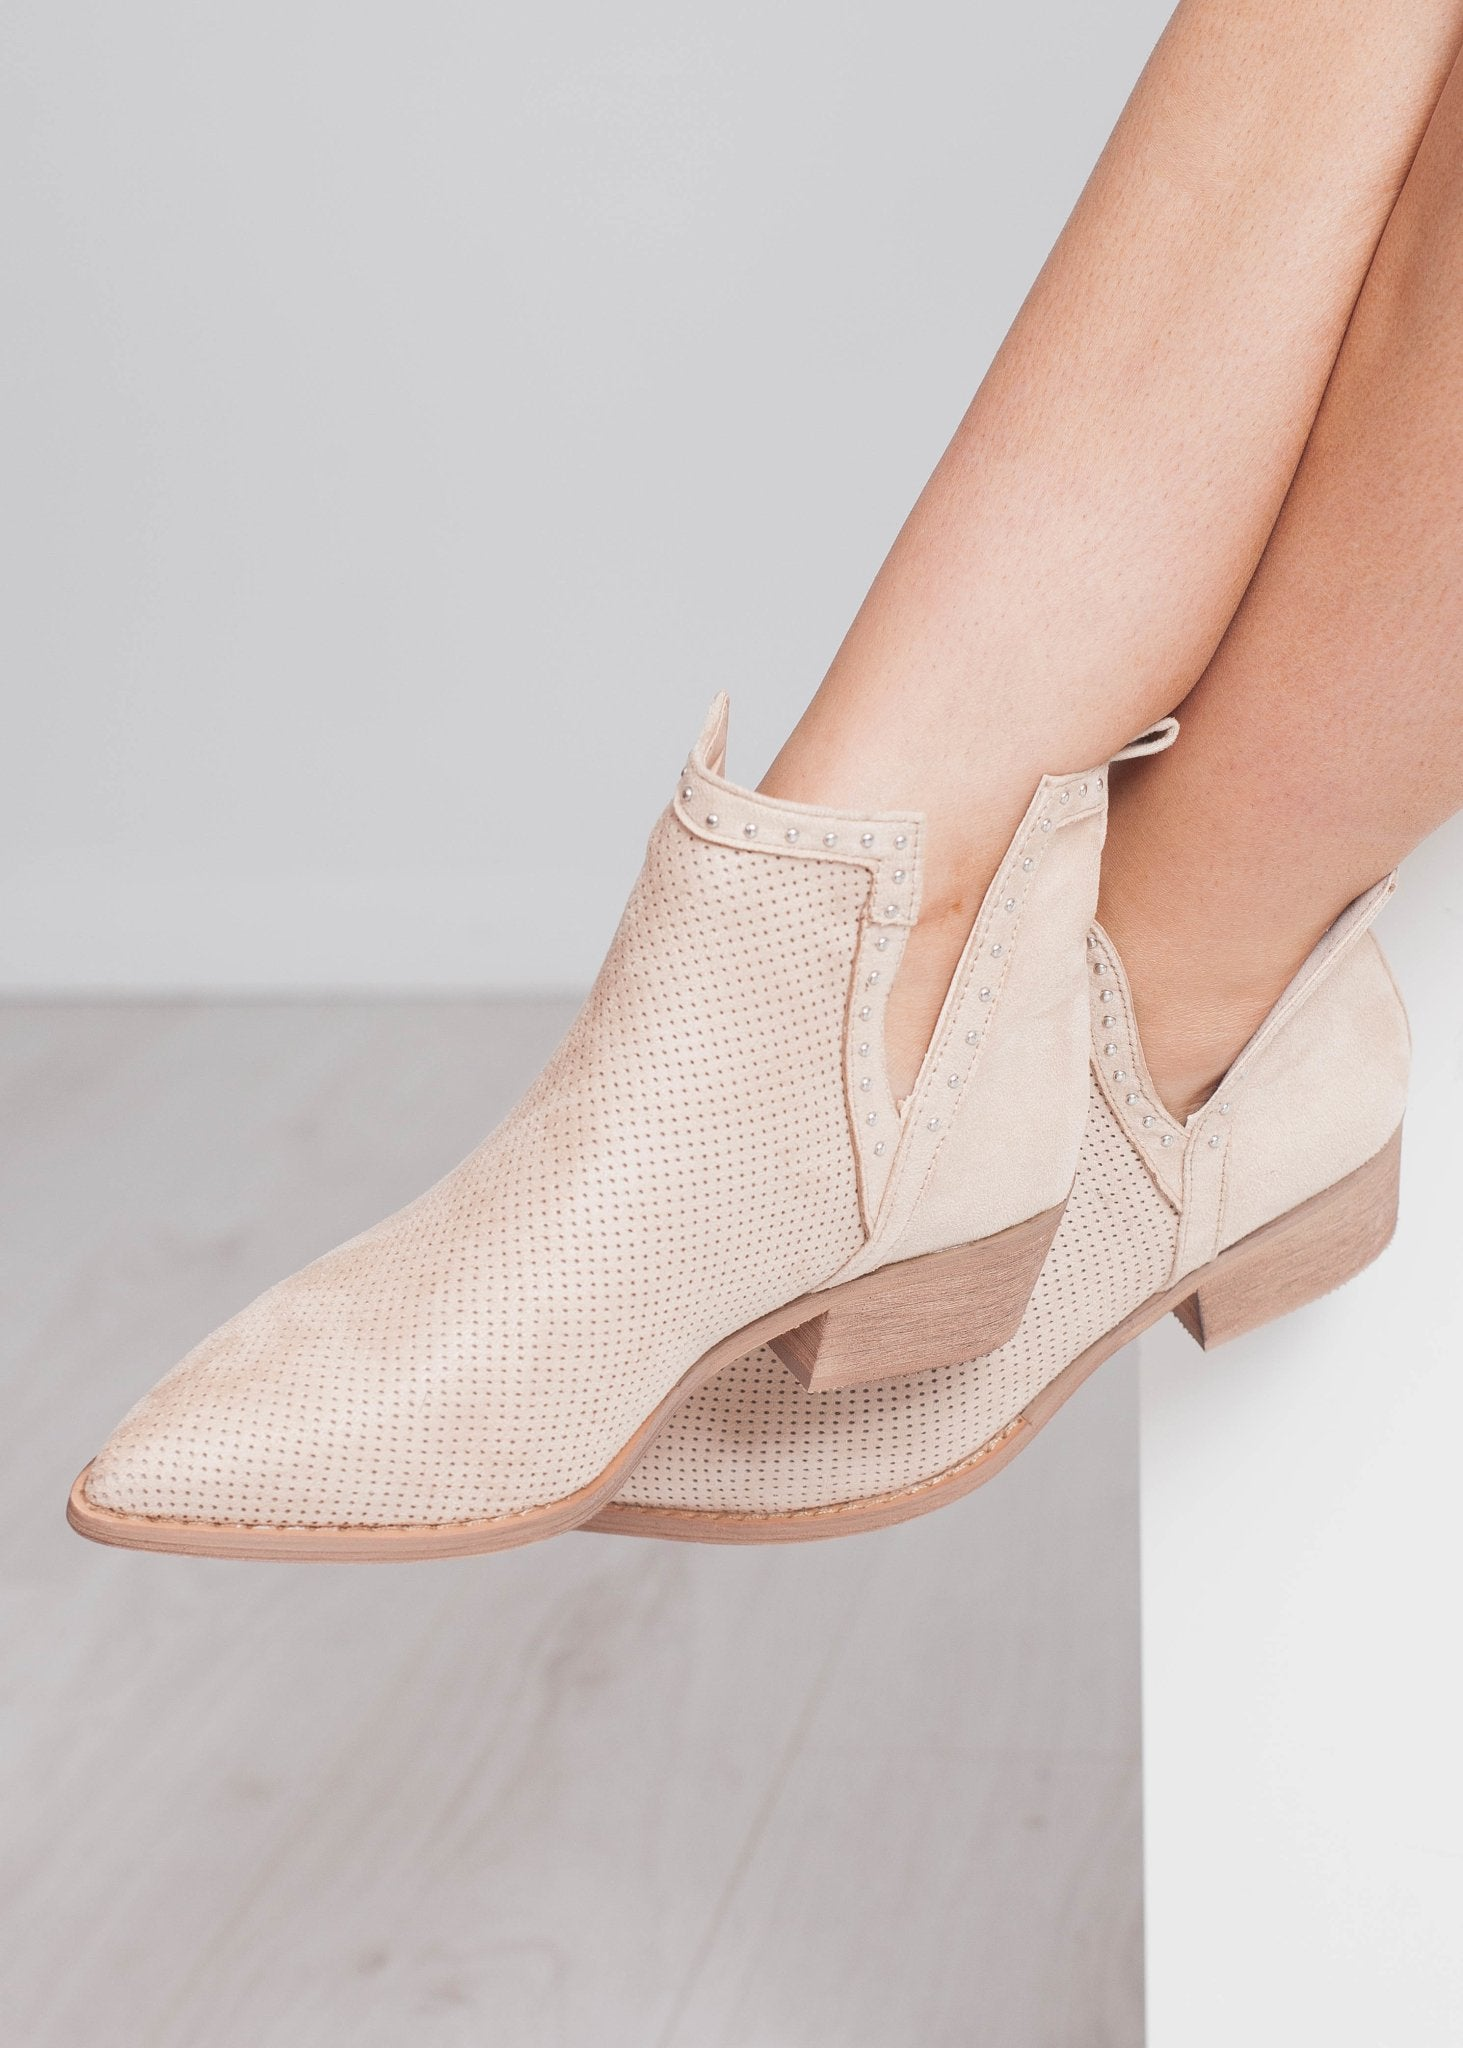 Gabby Cut Out Boot In Beige - The Walk in Wardrobe